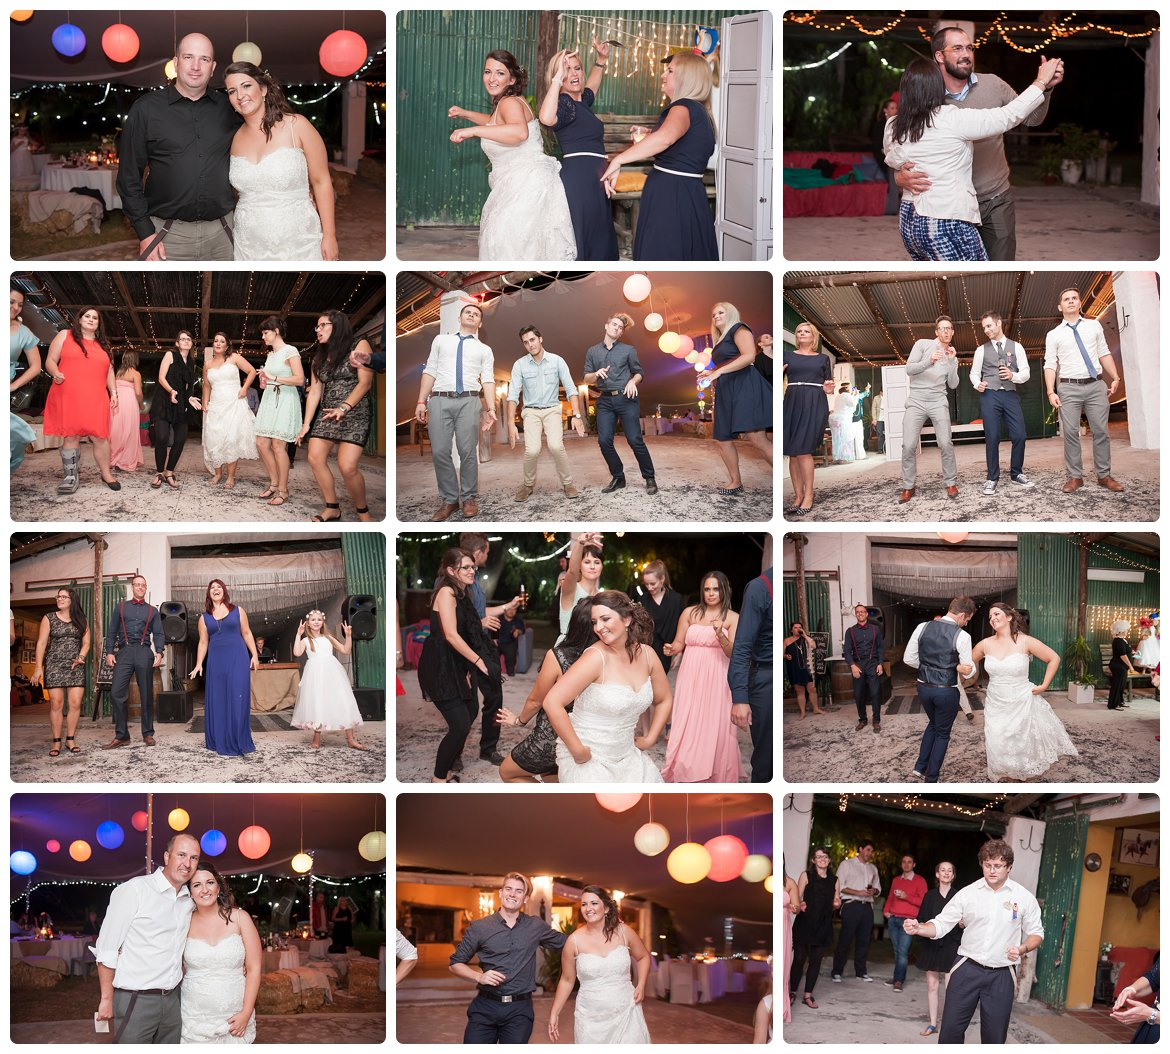 cape-town-wedding-photographer-schaftplaas-langebaan-0041